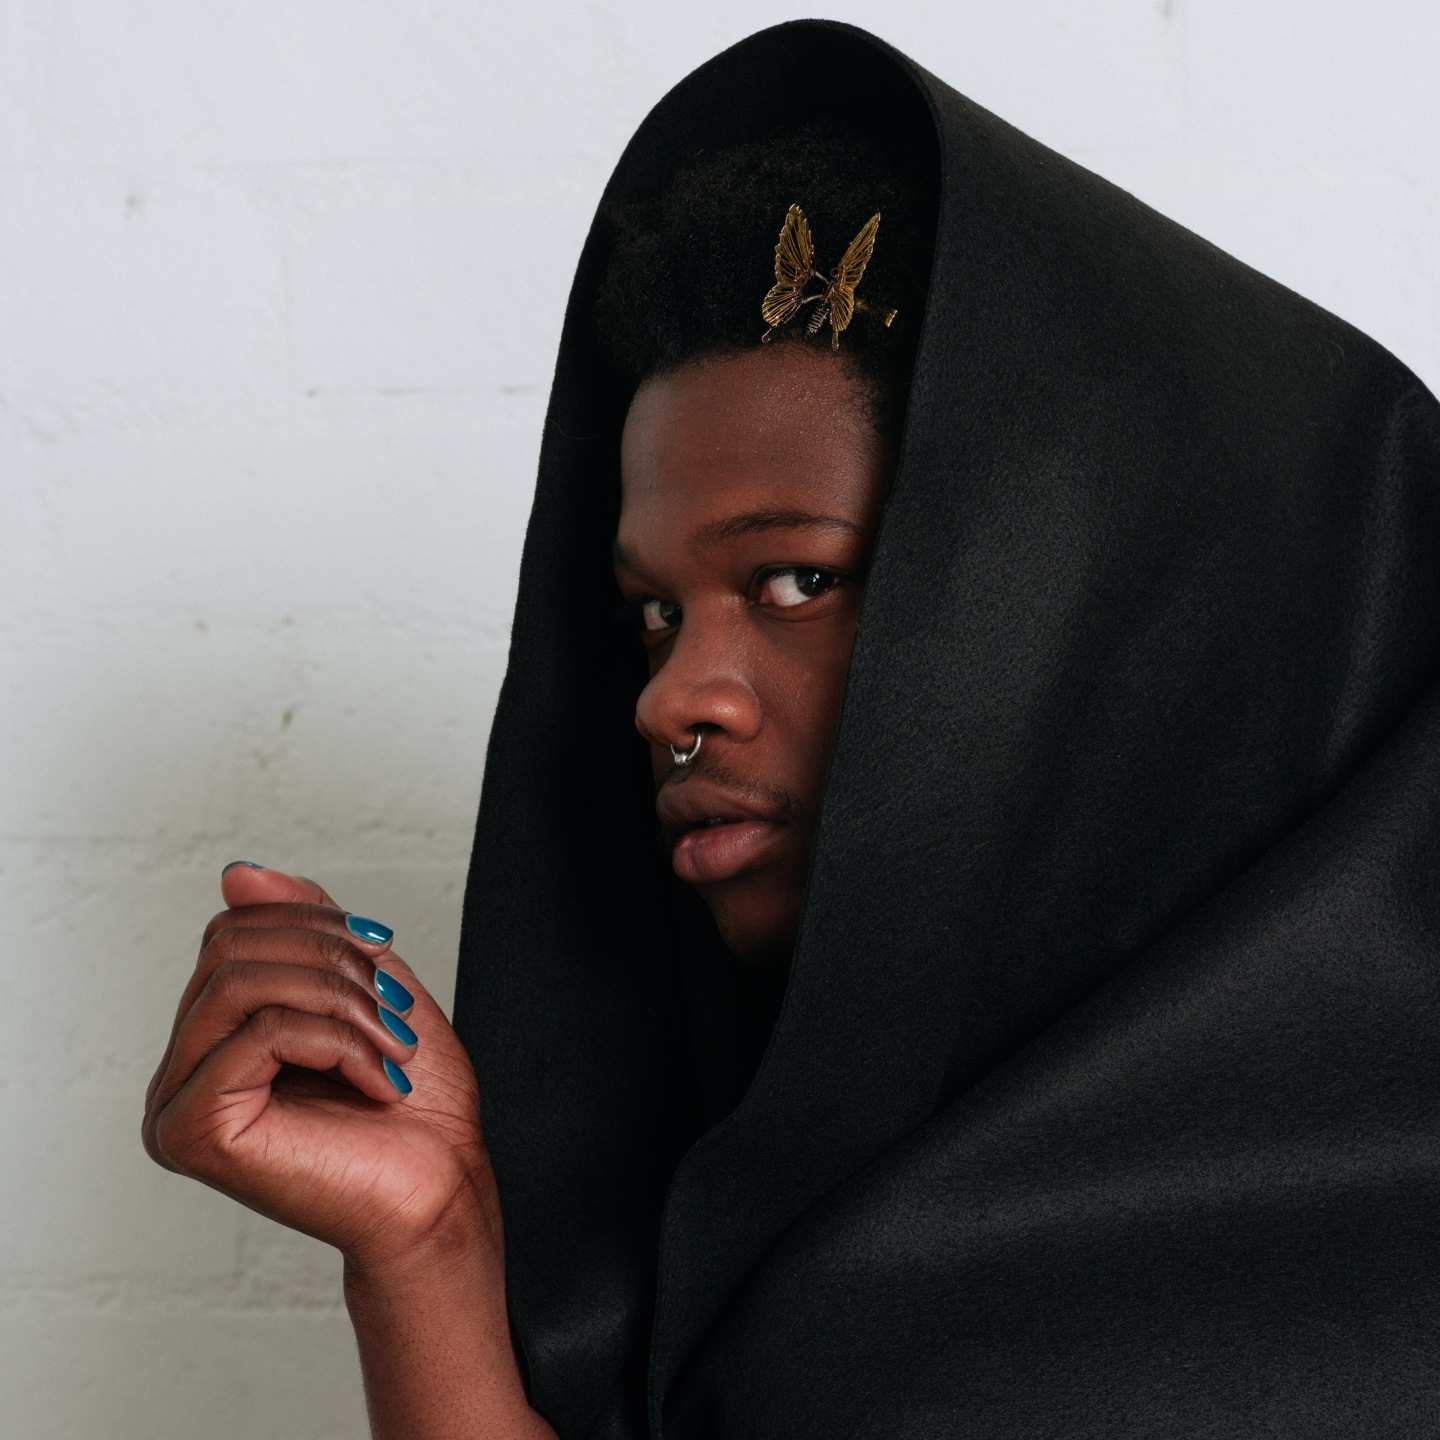 Shamir on his future and his new truth-telling album